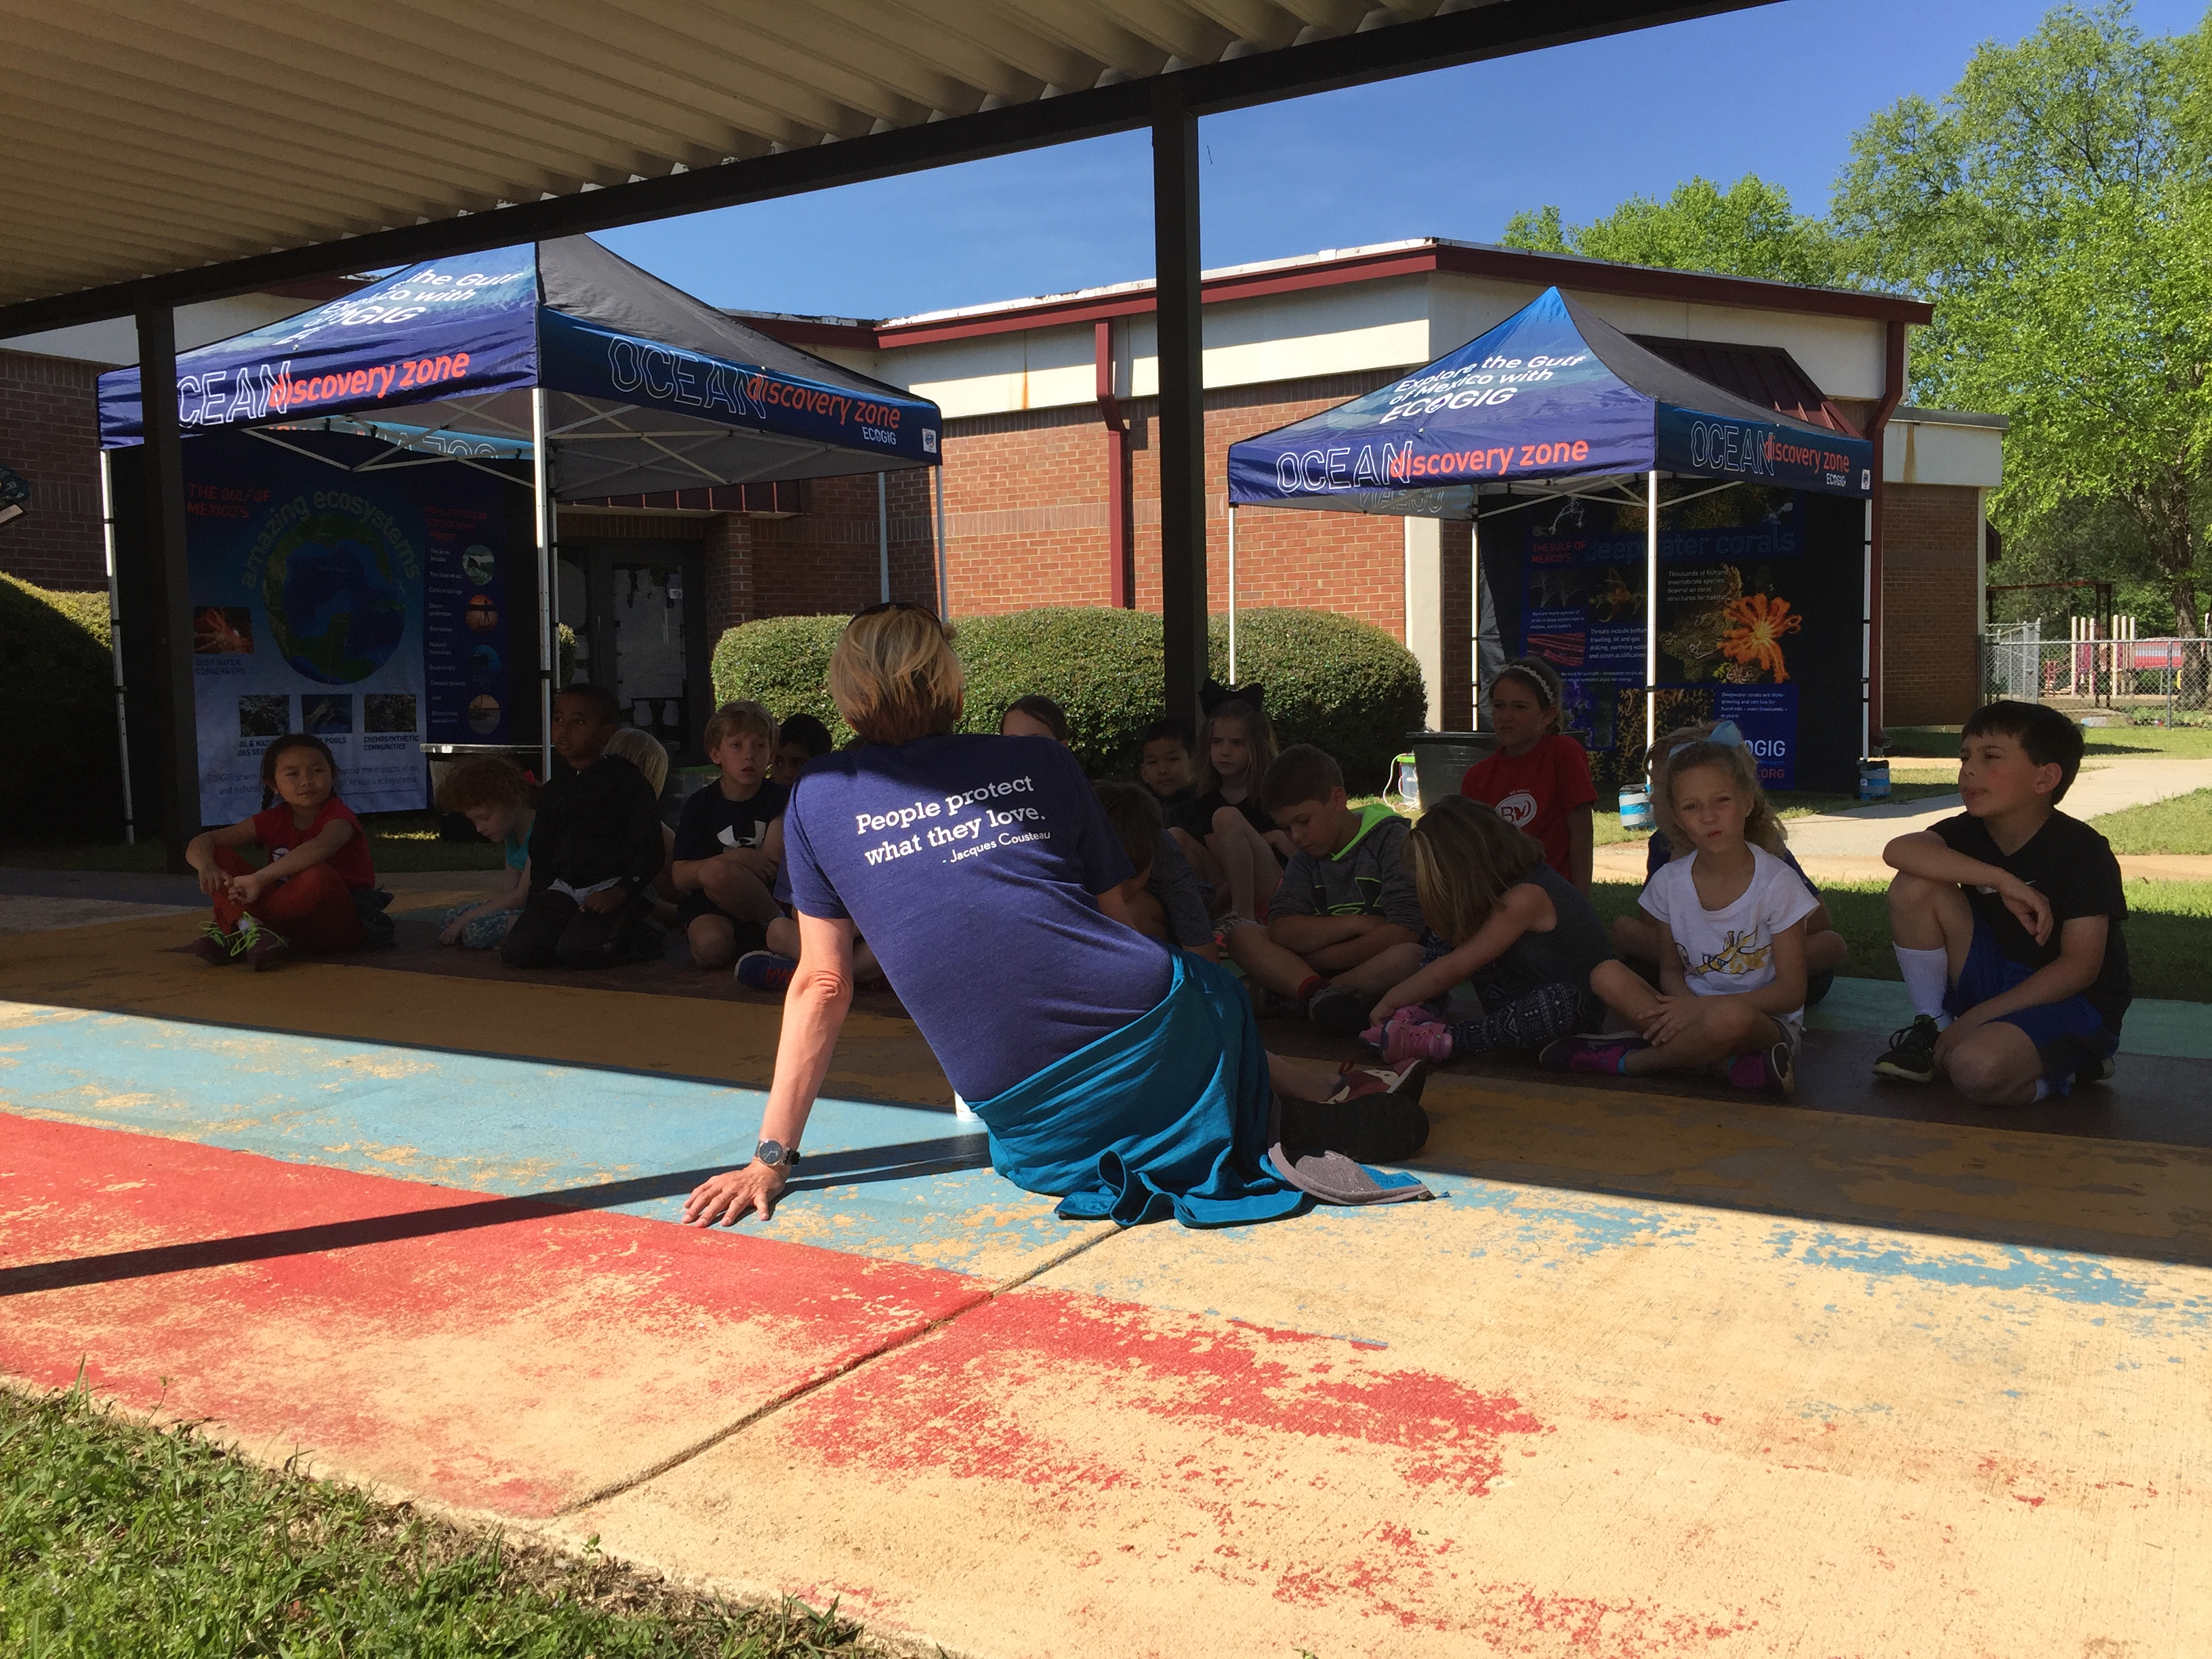 <div style='color:#000000;'><br /><br /><h2>2017 Oconee Primary School. ECOGIG outreach staff visited Oconee Primary for a second year in a row and shared ocean conservation messages with over 200 first & second graders. </h2>(c) ECOGIG</div>